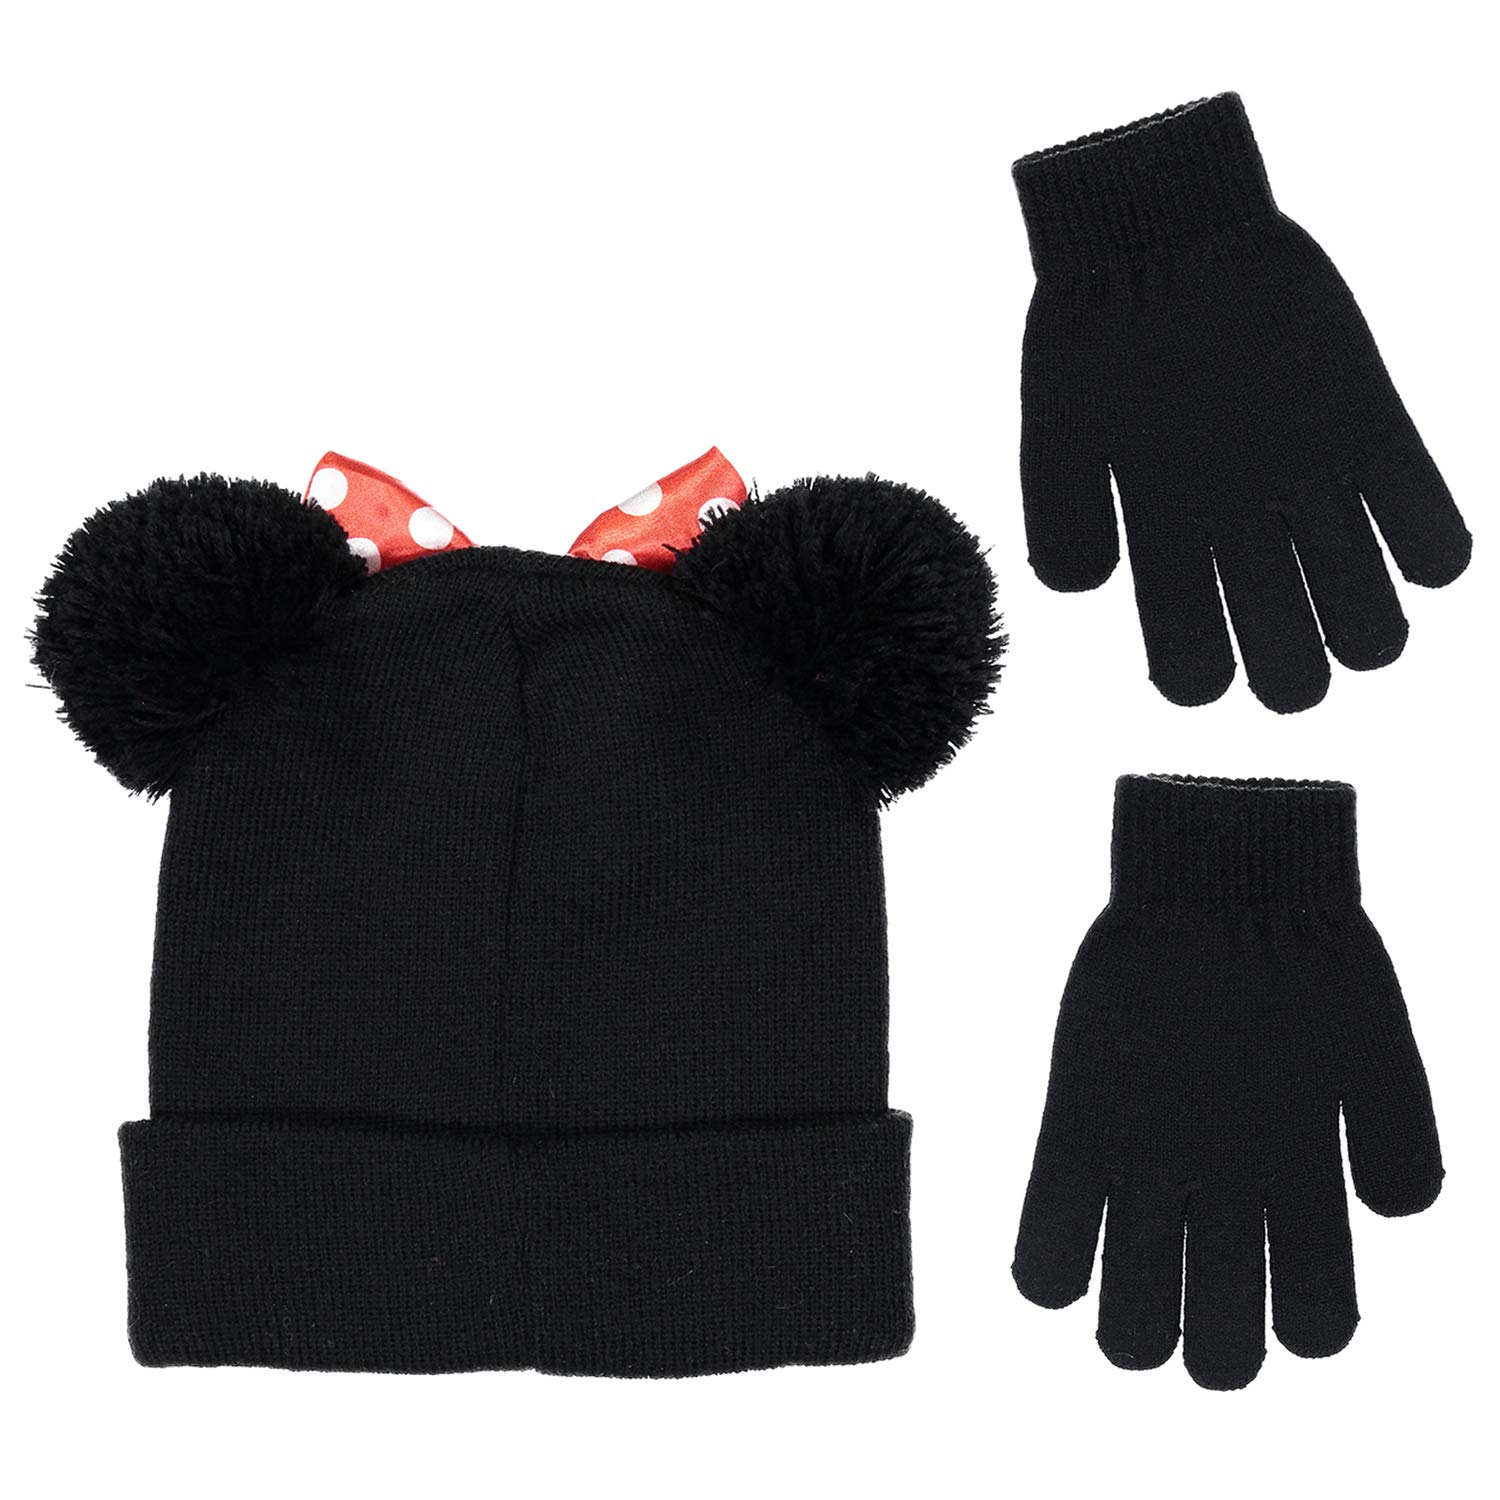 8239d27e44e Amazon.com  Disney Minnie Mouse Girls Beanie Knit Winter Hat and Glove Set   4015   Clothing